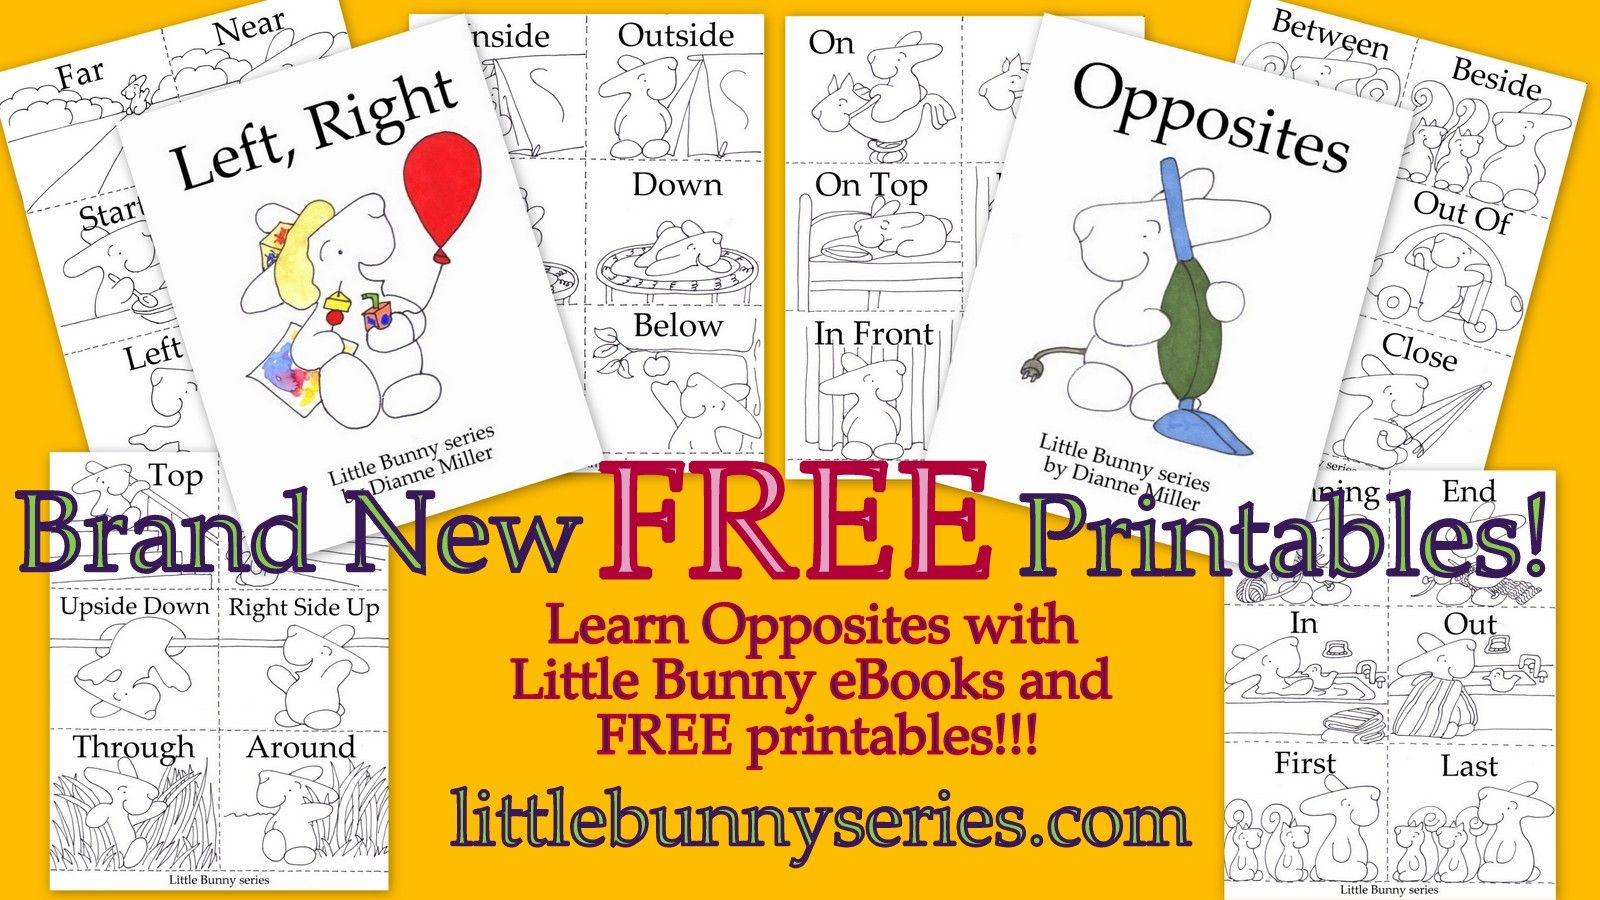 Ebooks And Hundreds Of Free Printables At